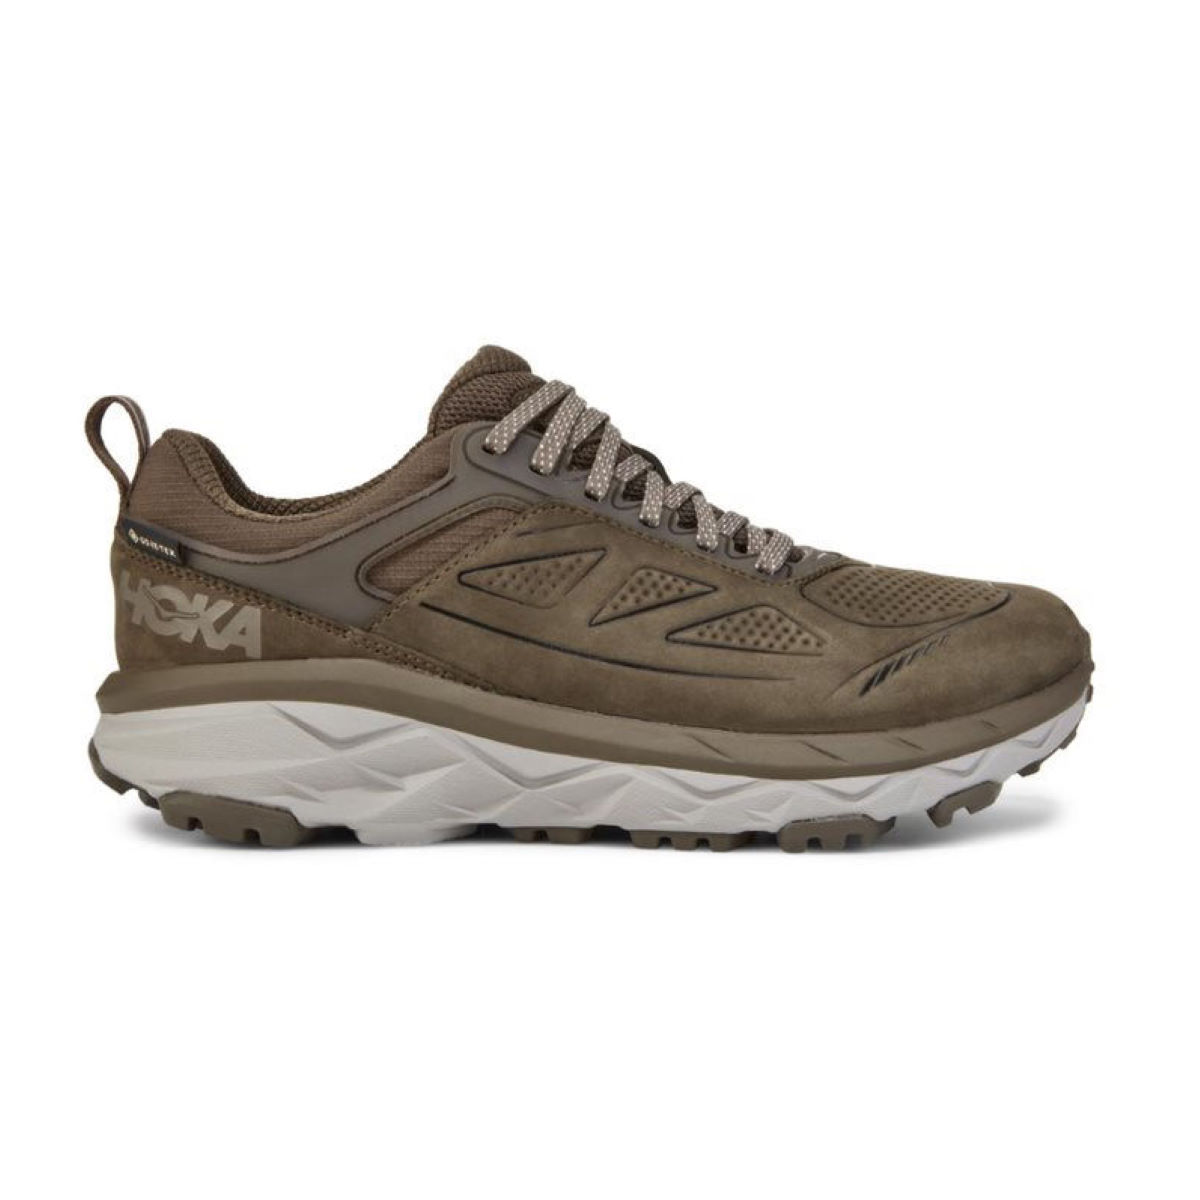 Hoka One One Womens Challenger Low Gtx Trail Running Shoes - Uk 4